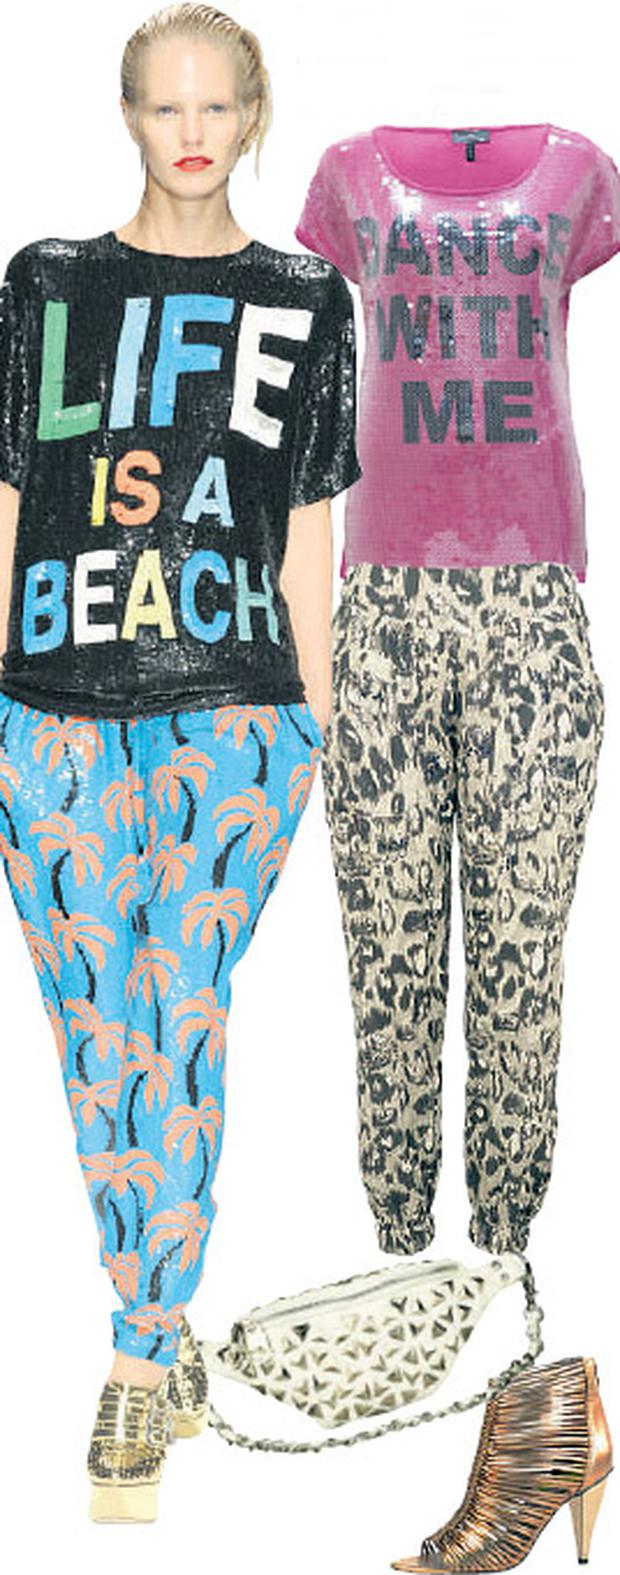 Sequin top, €54; animal-print trousers, €33.50; bumbag, €33.50; and gold heels, €67, all at River Island